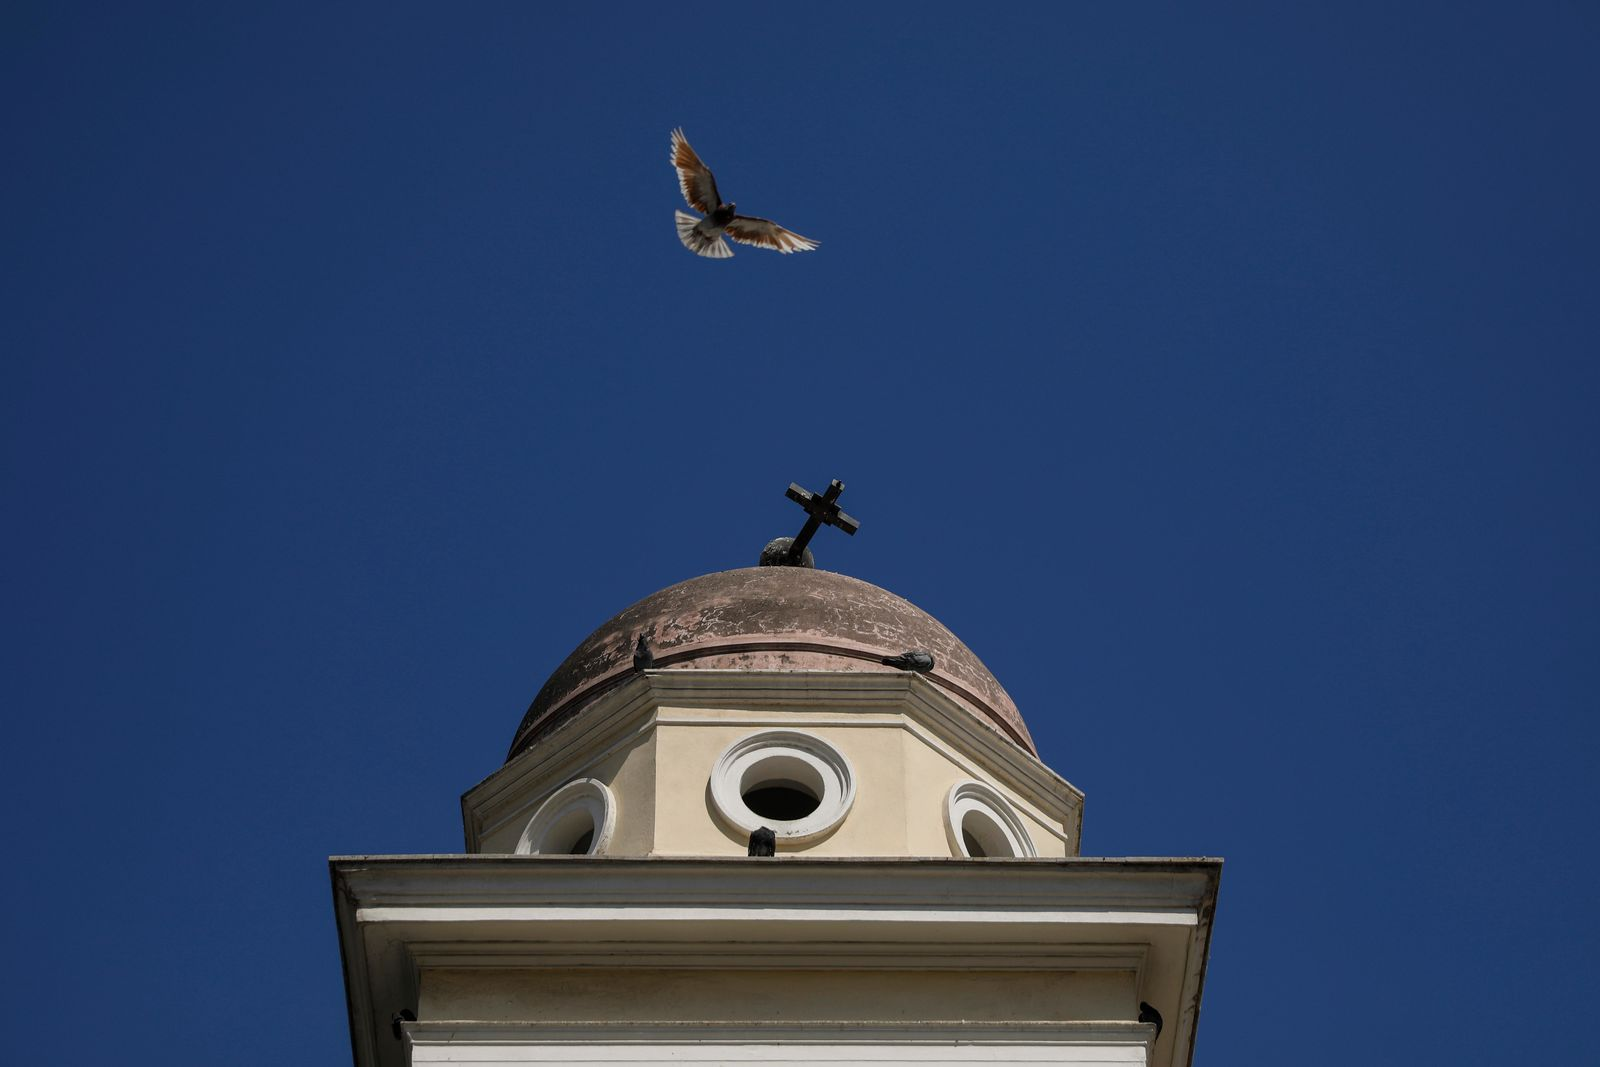 A pigeon flies next the damaged bell tower of Pantanassa church at the Monastiraki square following an earthquake in Athens, Friday, July 19, 2019. (AP Photo/Petros Giannakouris)